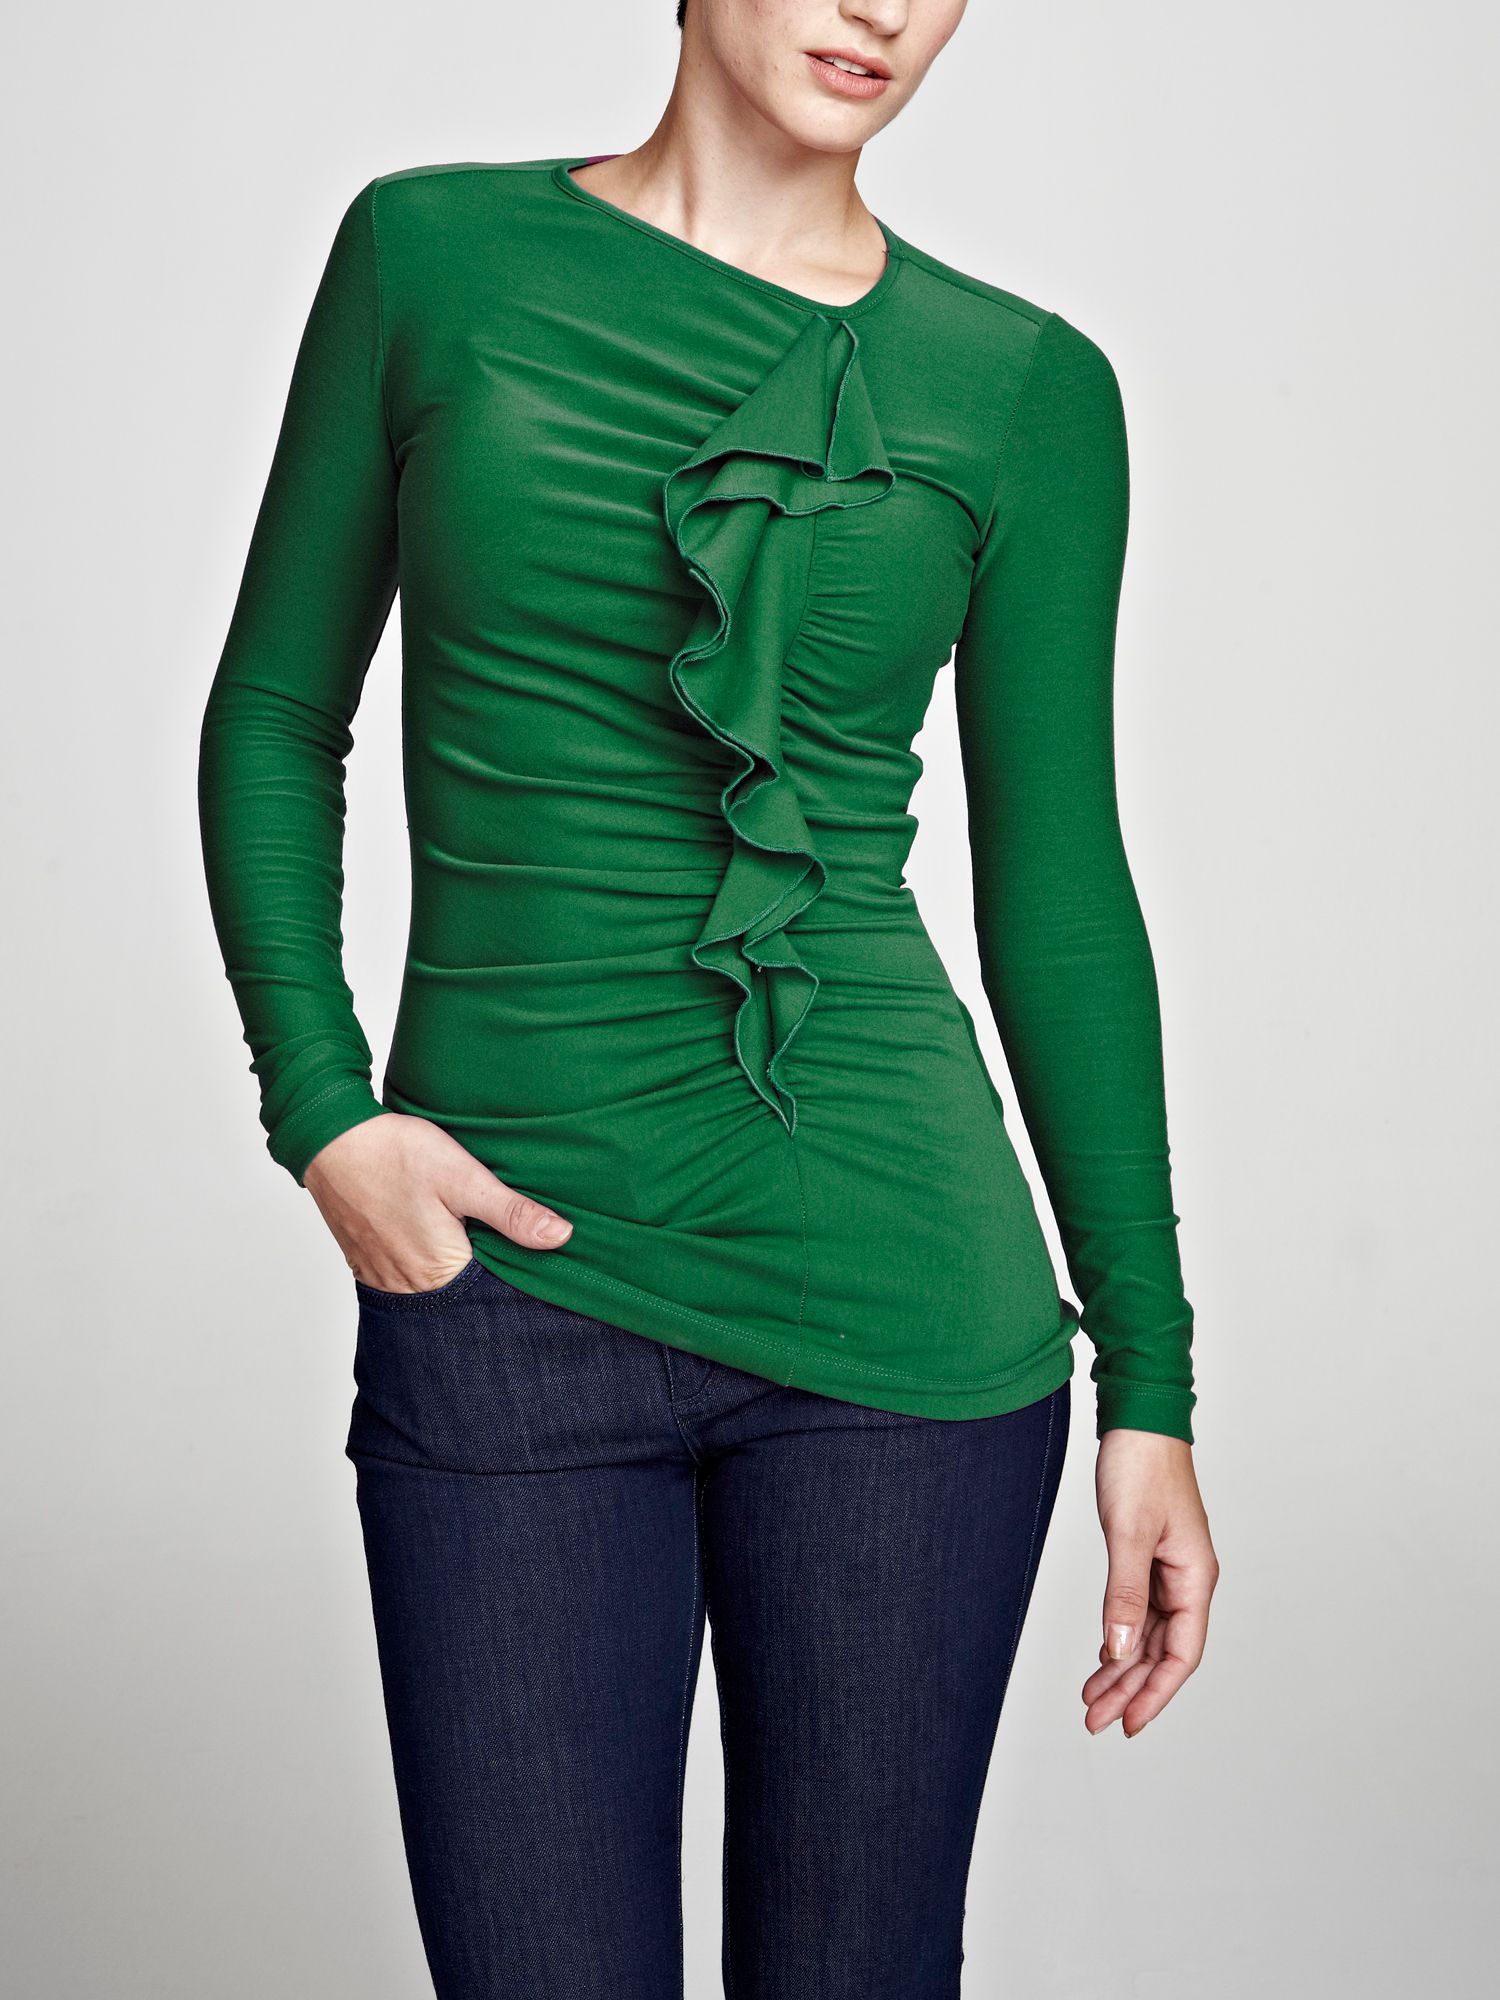 ThinHeat top with frill detail